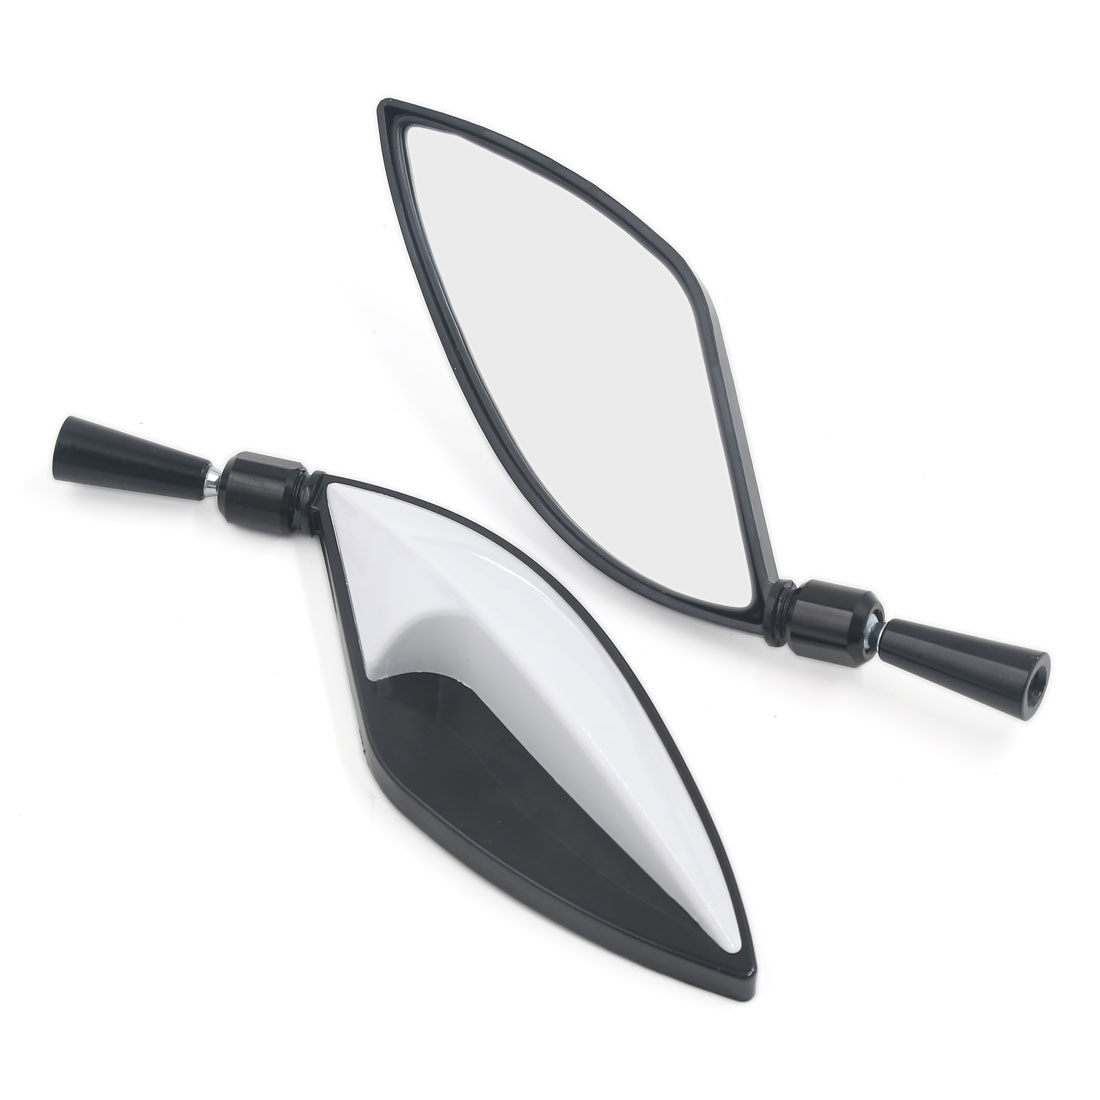 Pair Universal Leaf Shaped Flat Side Rearview Mirrors 8mm 10mm White for Motorcycle